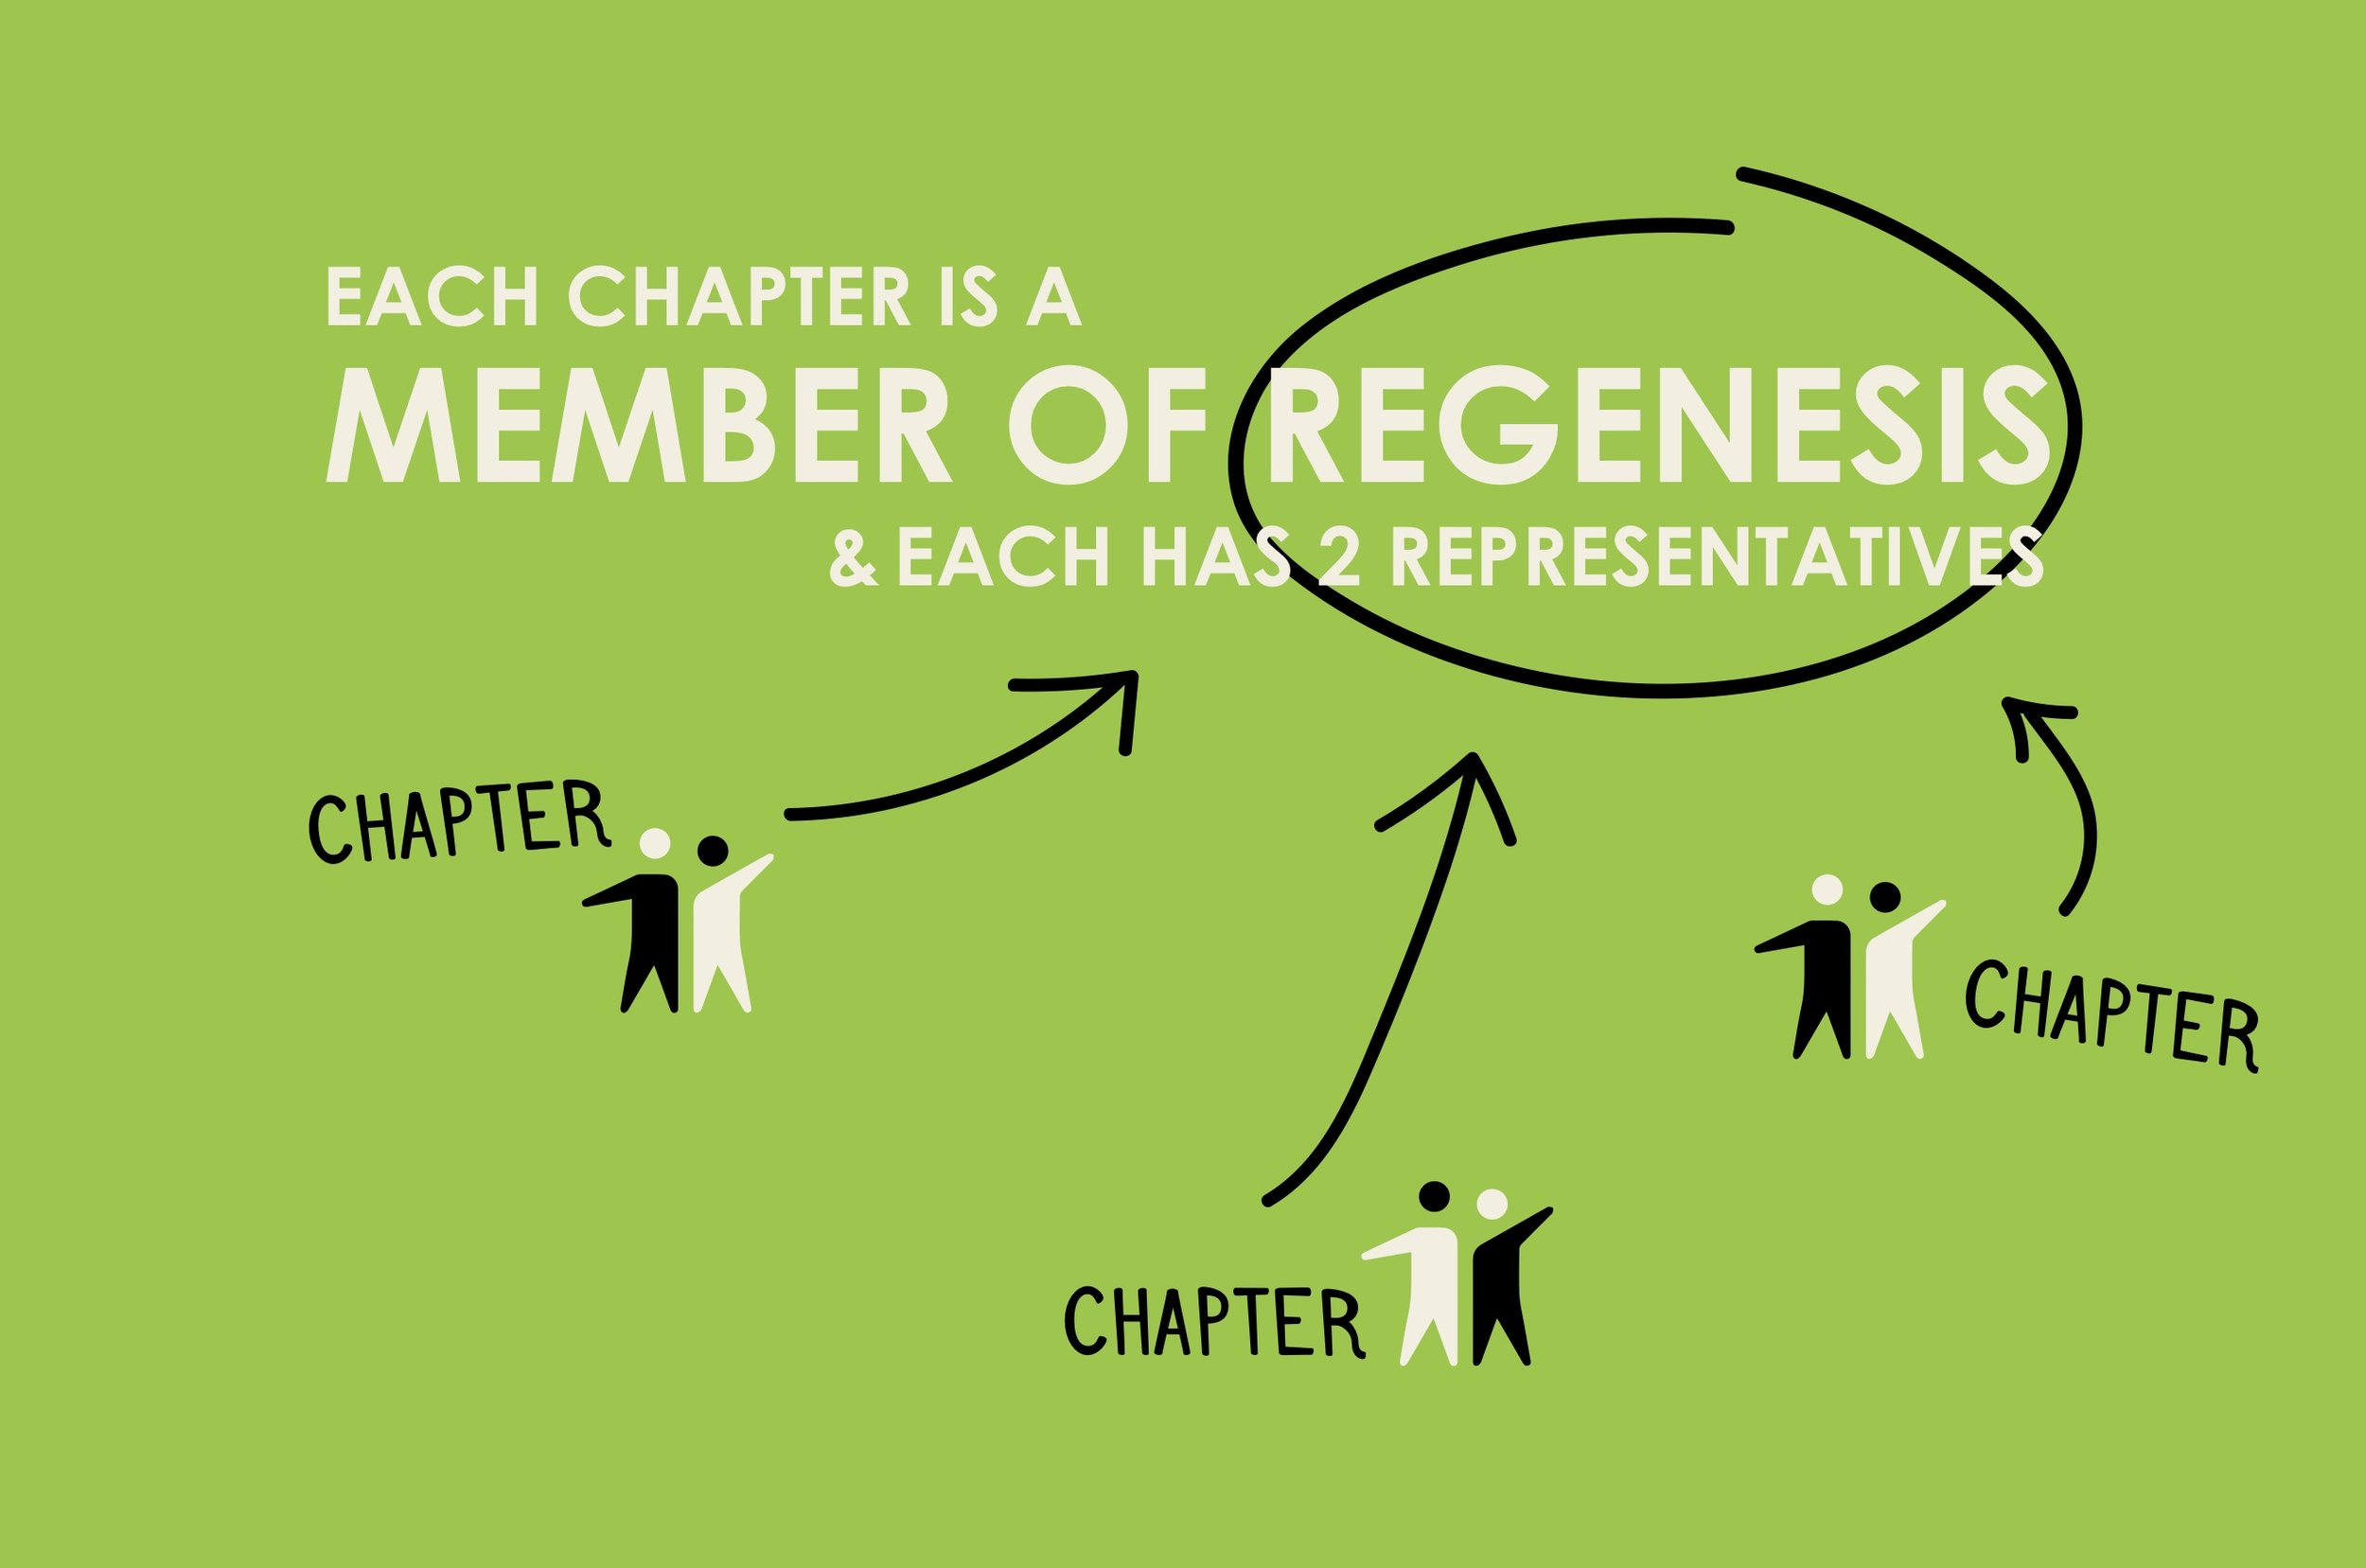 Each chapter is a member of Regenesis and each has 2 representatives.